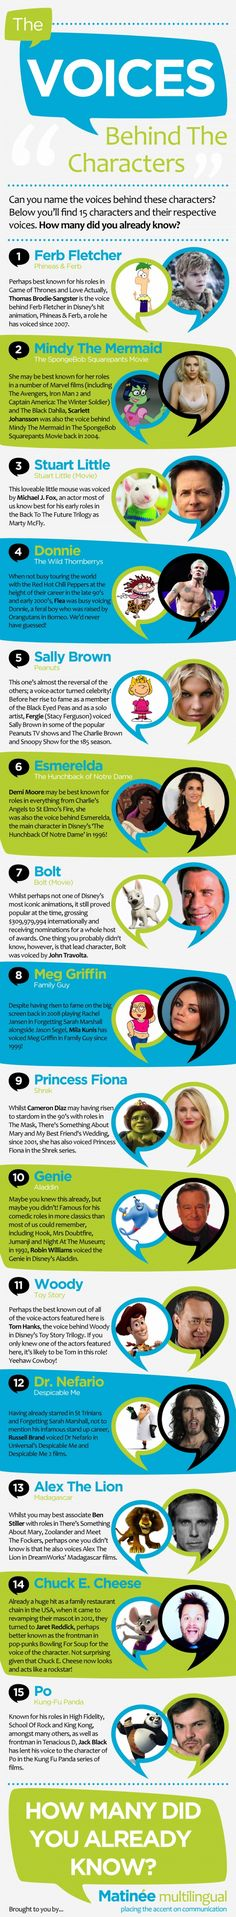 The Voices behind The Characters Infographic #Infographics